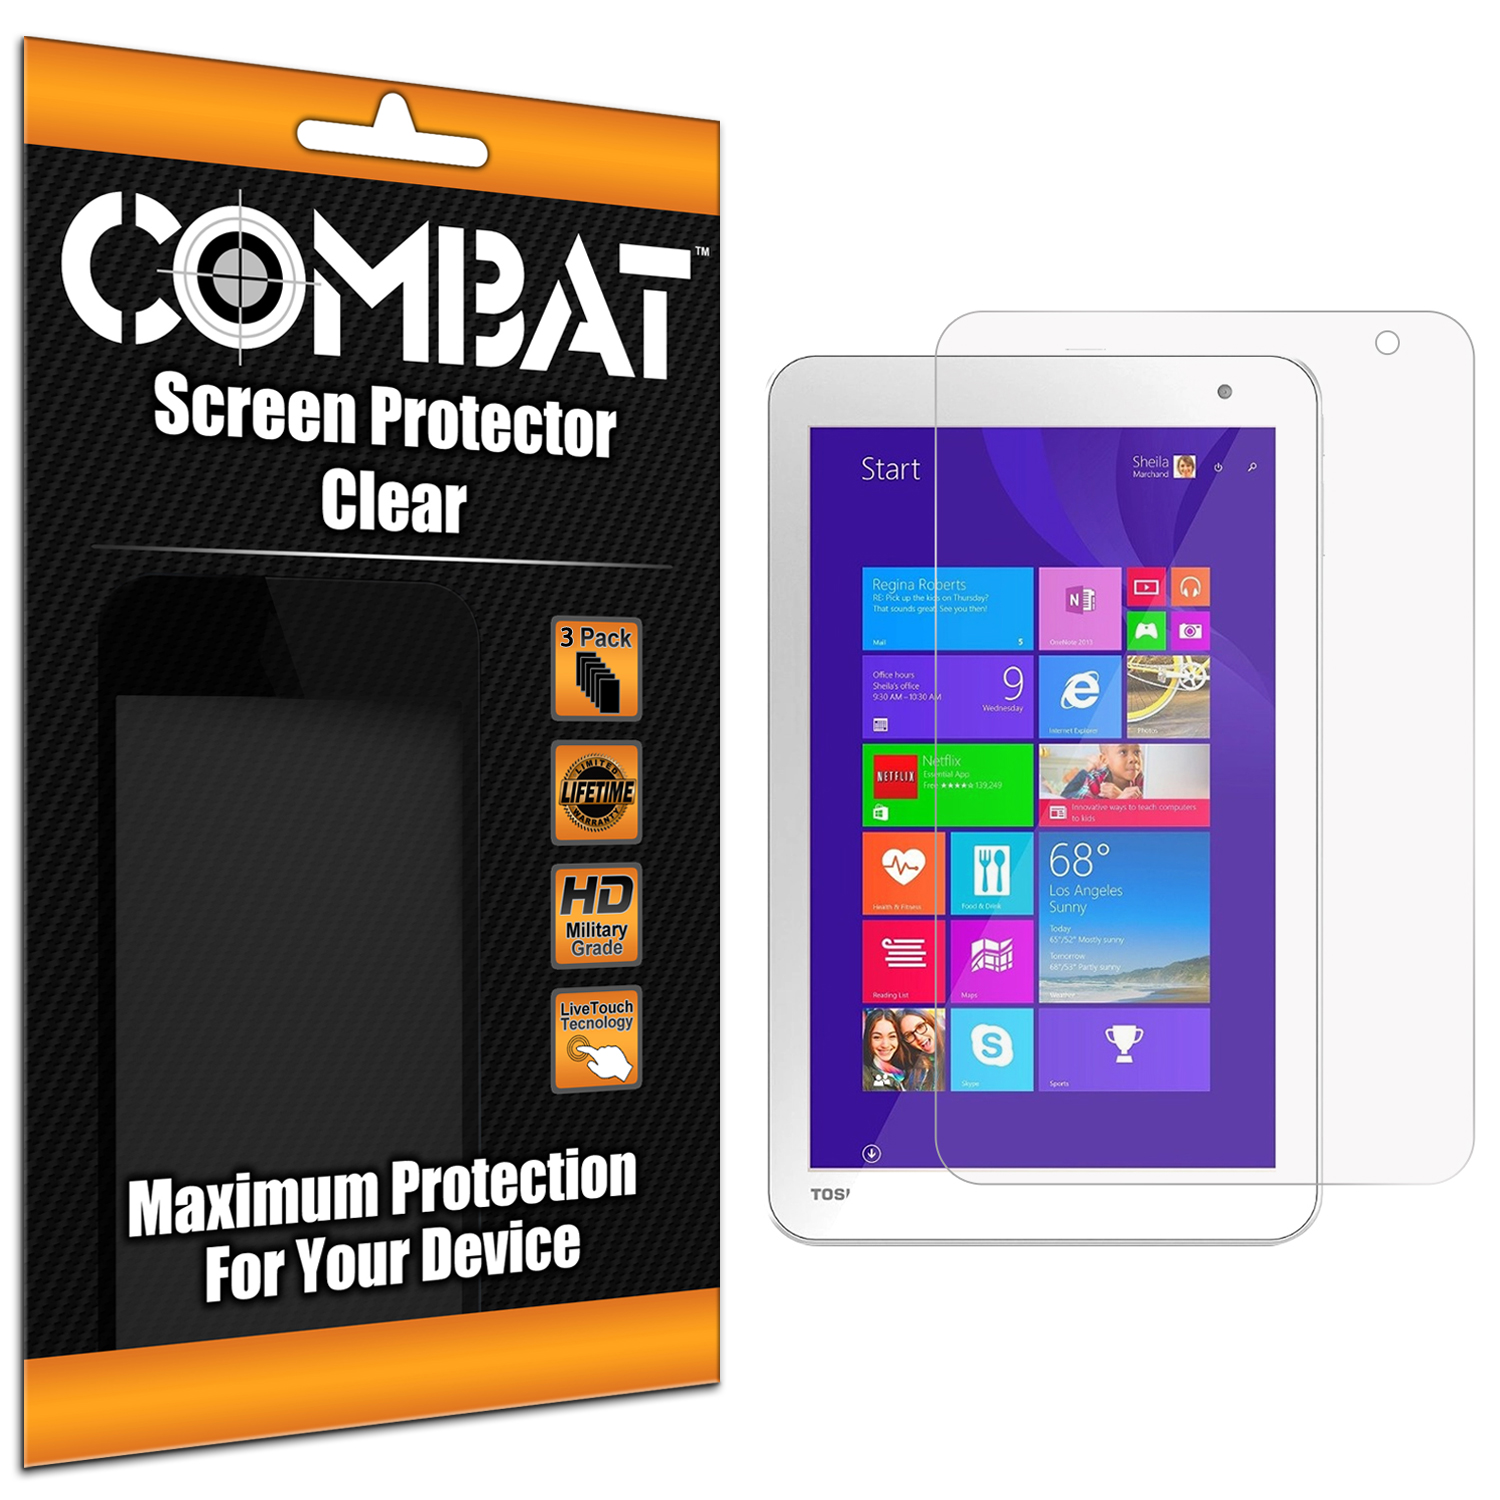 Toshiba Encore 2 8.0 Clear Combat 6 Pack HD Clear Screen Protector